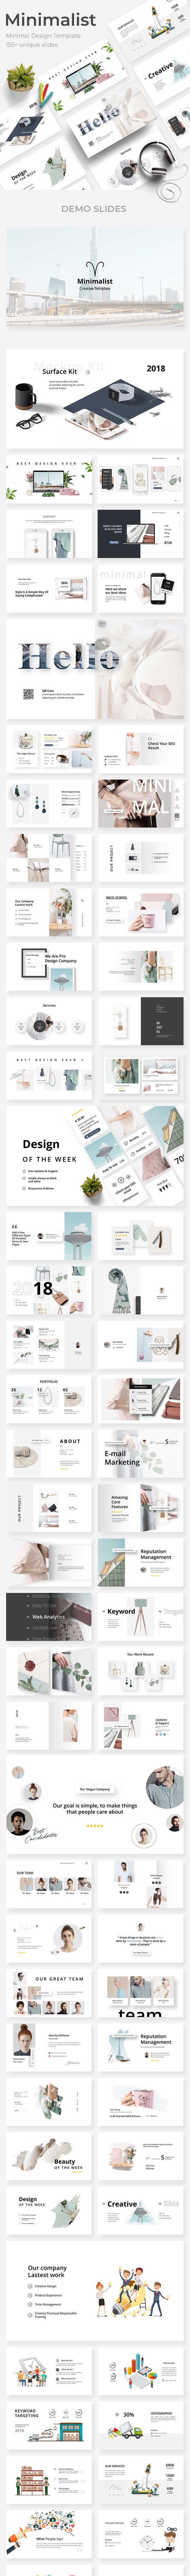 Minimalist 2019 Google Slide Template - Google Slides Presentation Templates